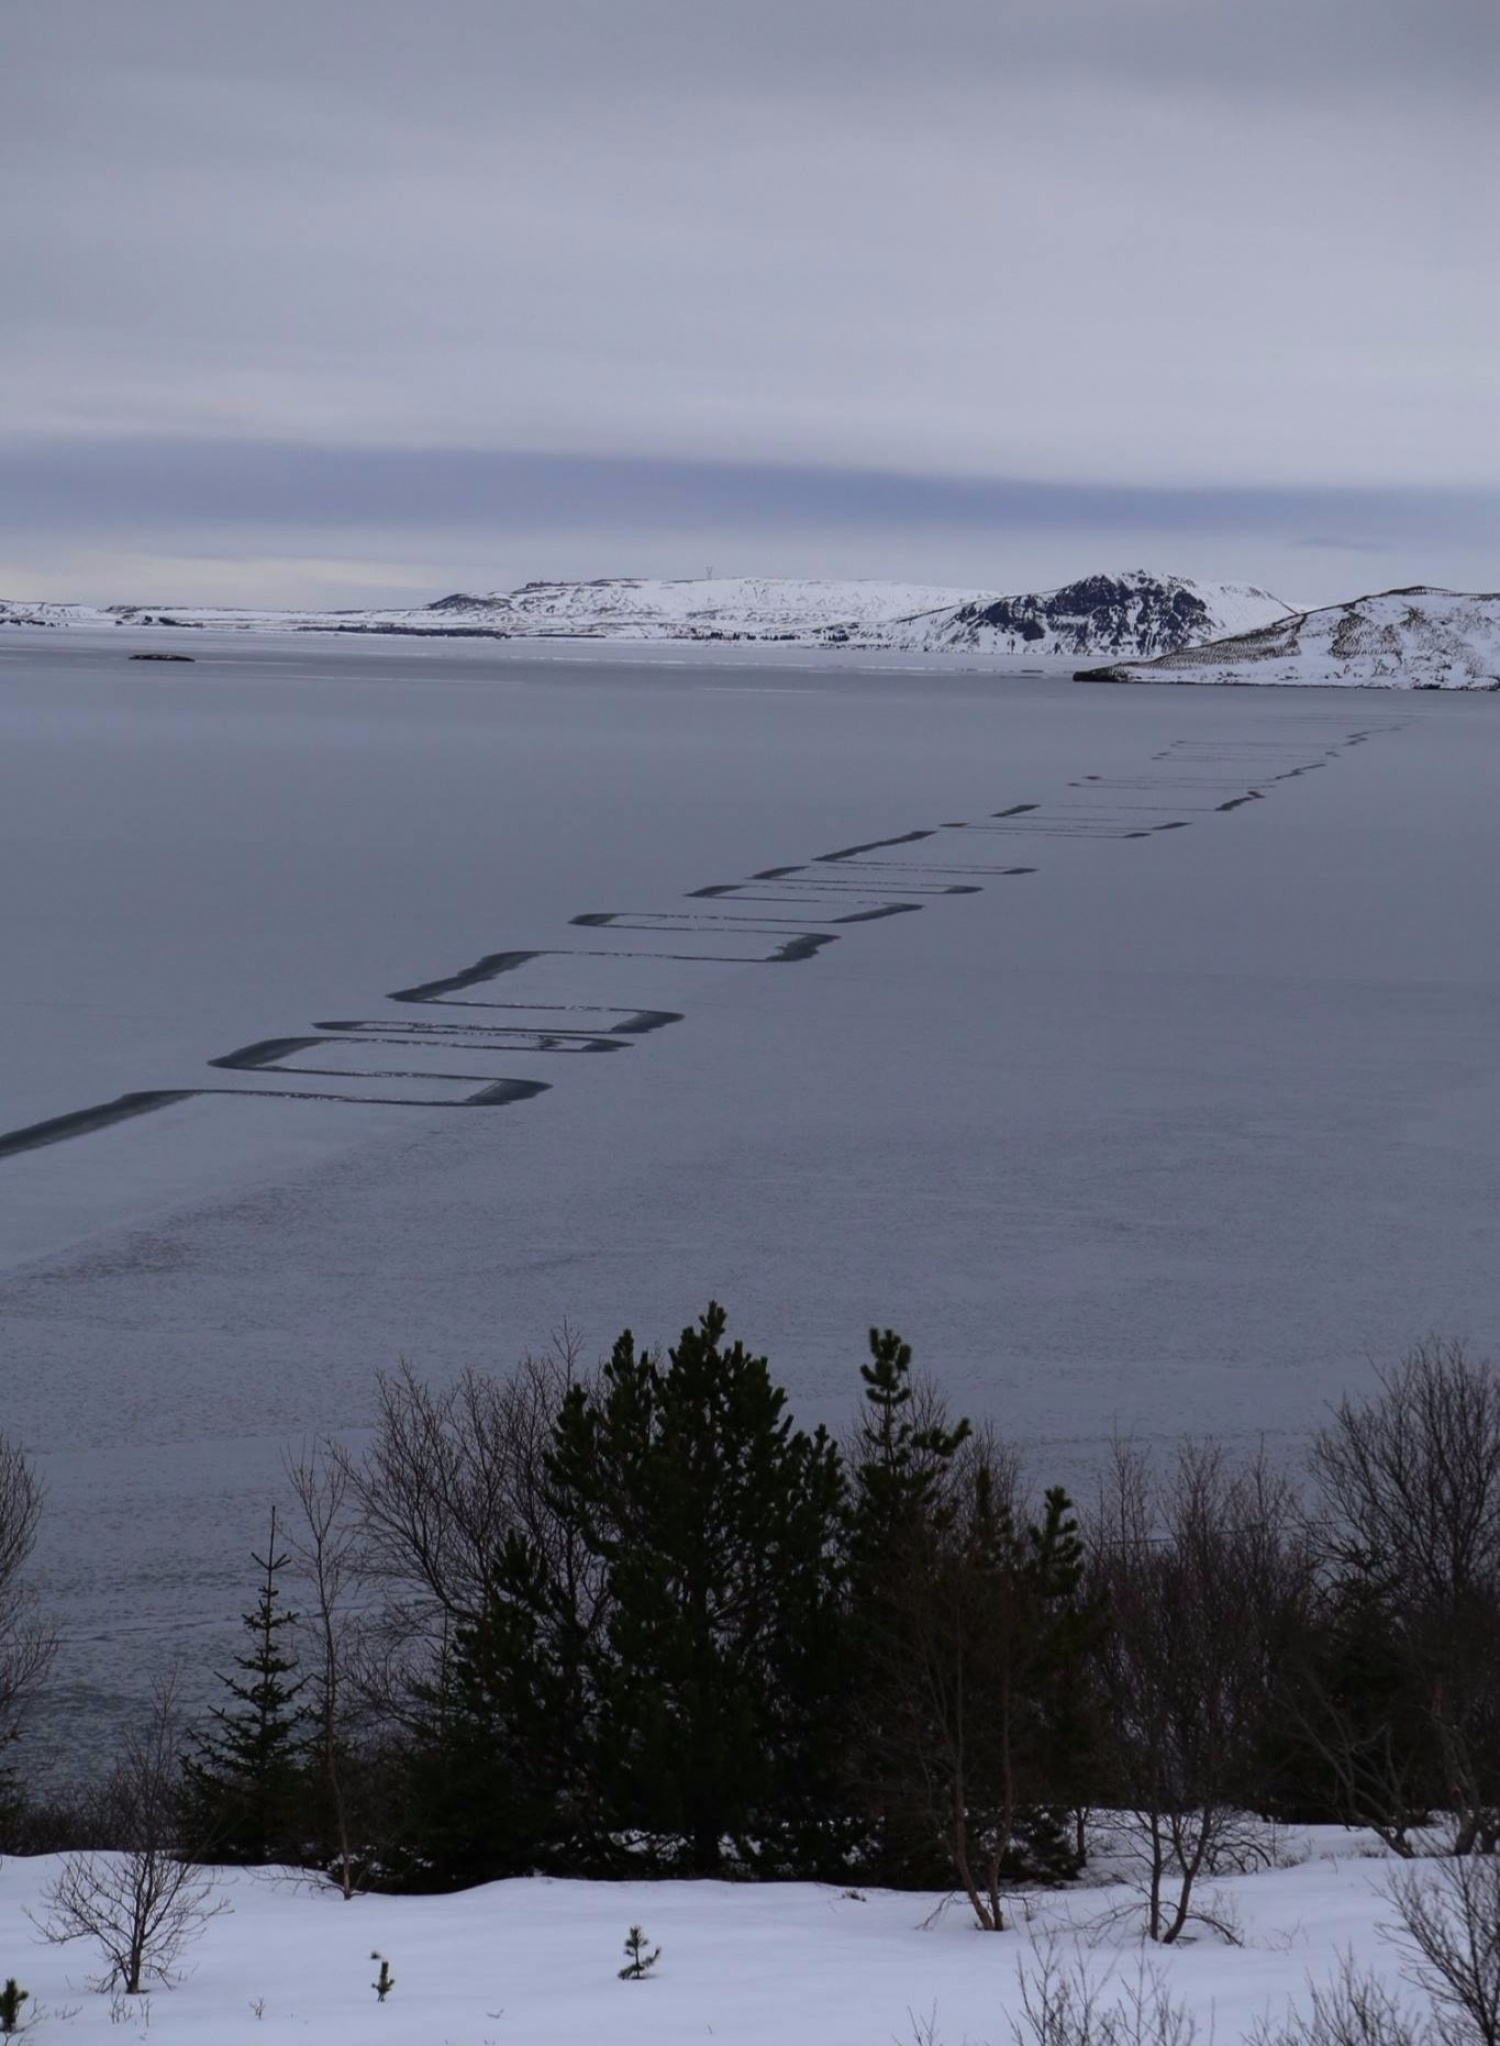 A Rare Natural Phenomenon Has Left Eerie Zig-Zag Patterns on a lake in Iceland